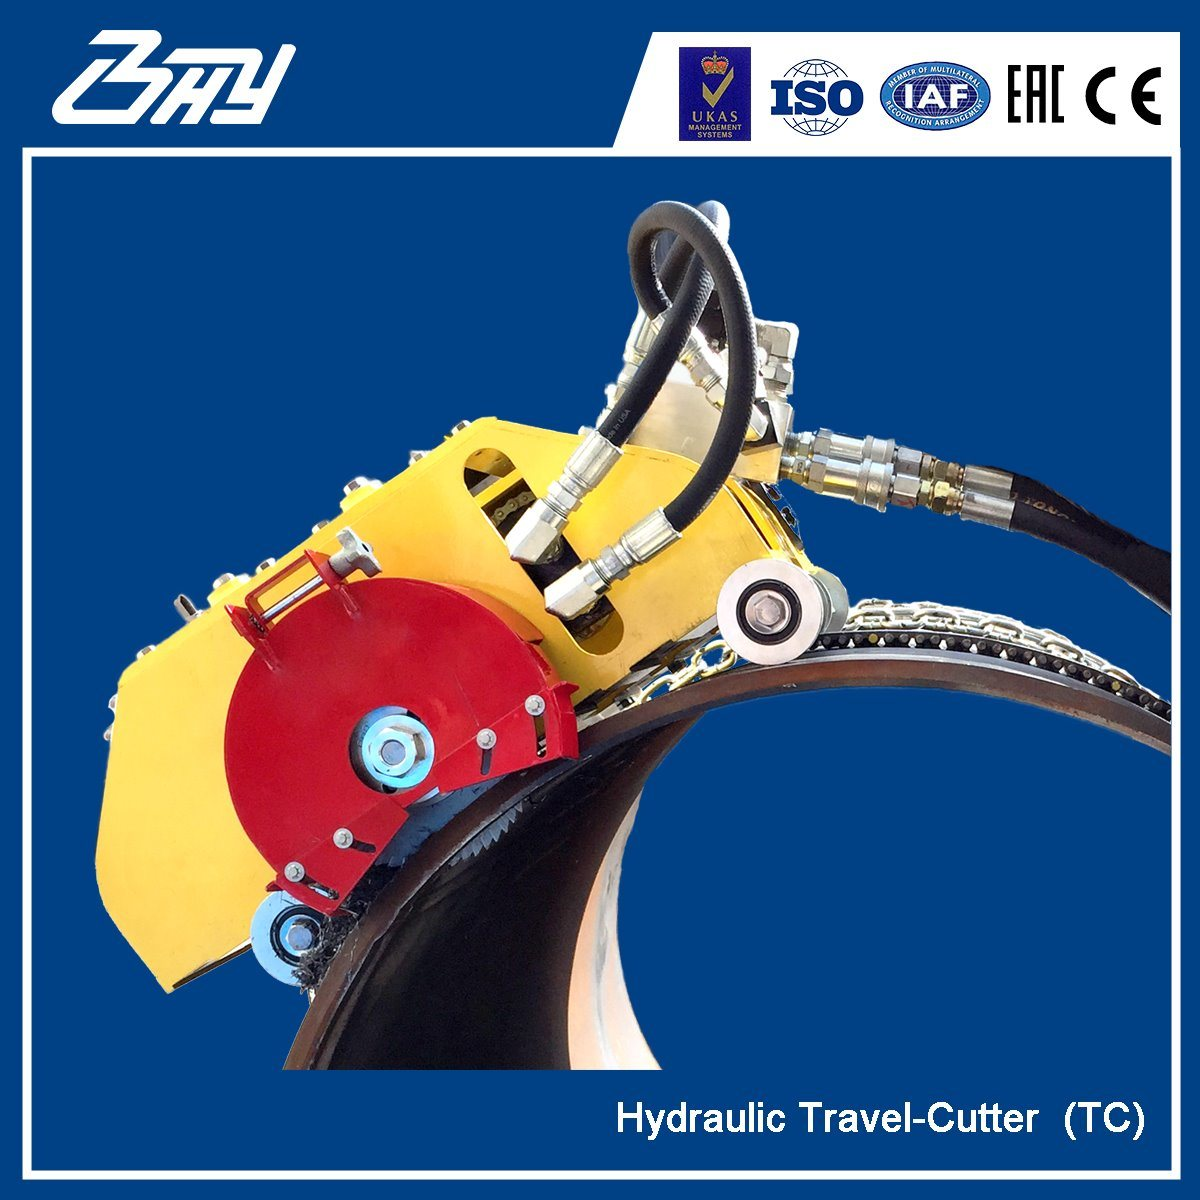 Od-Mounted Portable Hydraulic Travel Cutter/ Climbing Pipe Cutting and Beveling Machine - TC0672